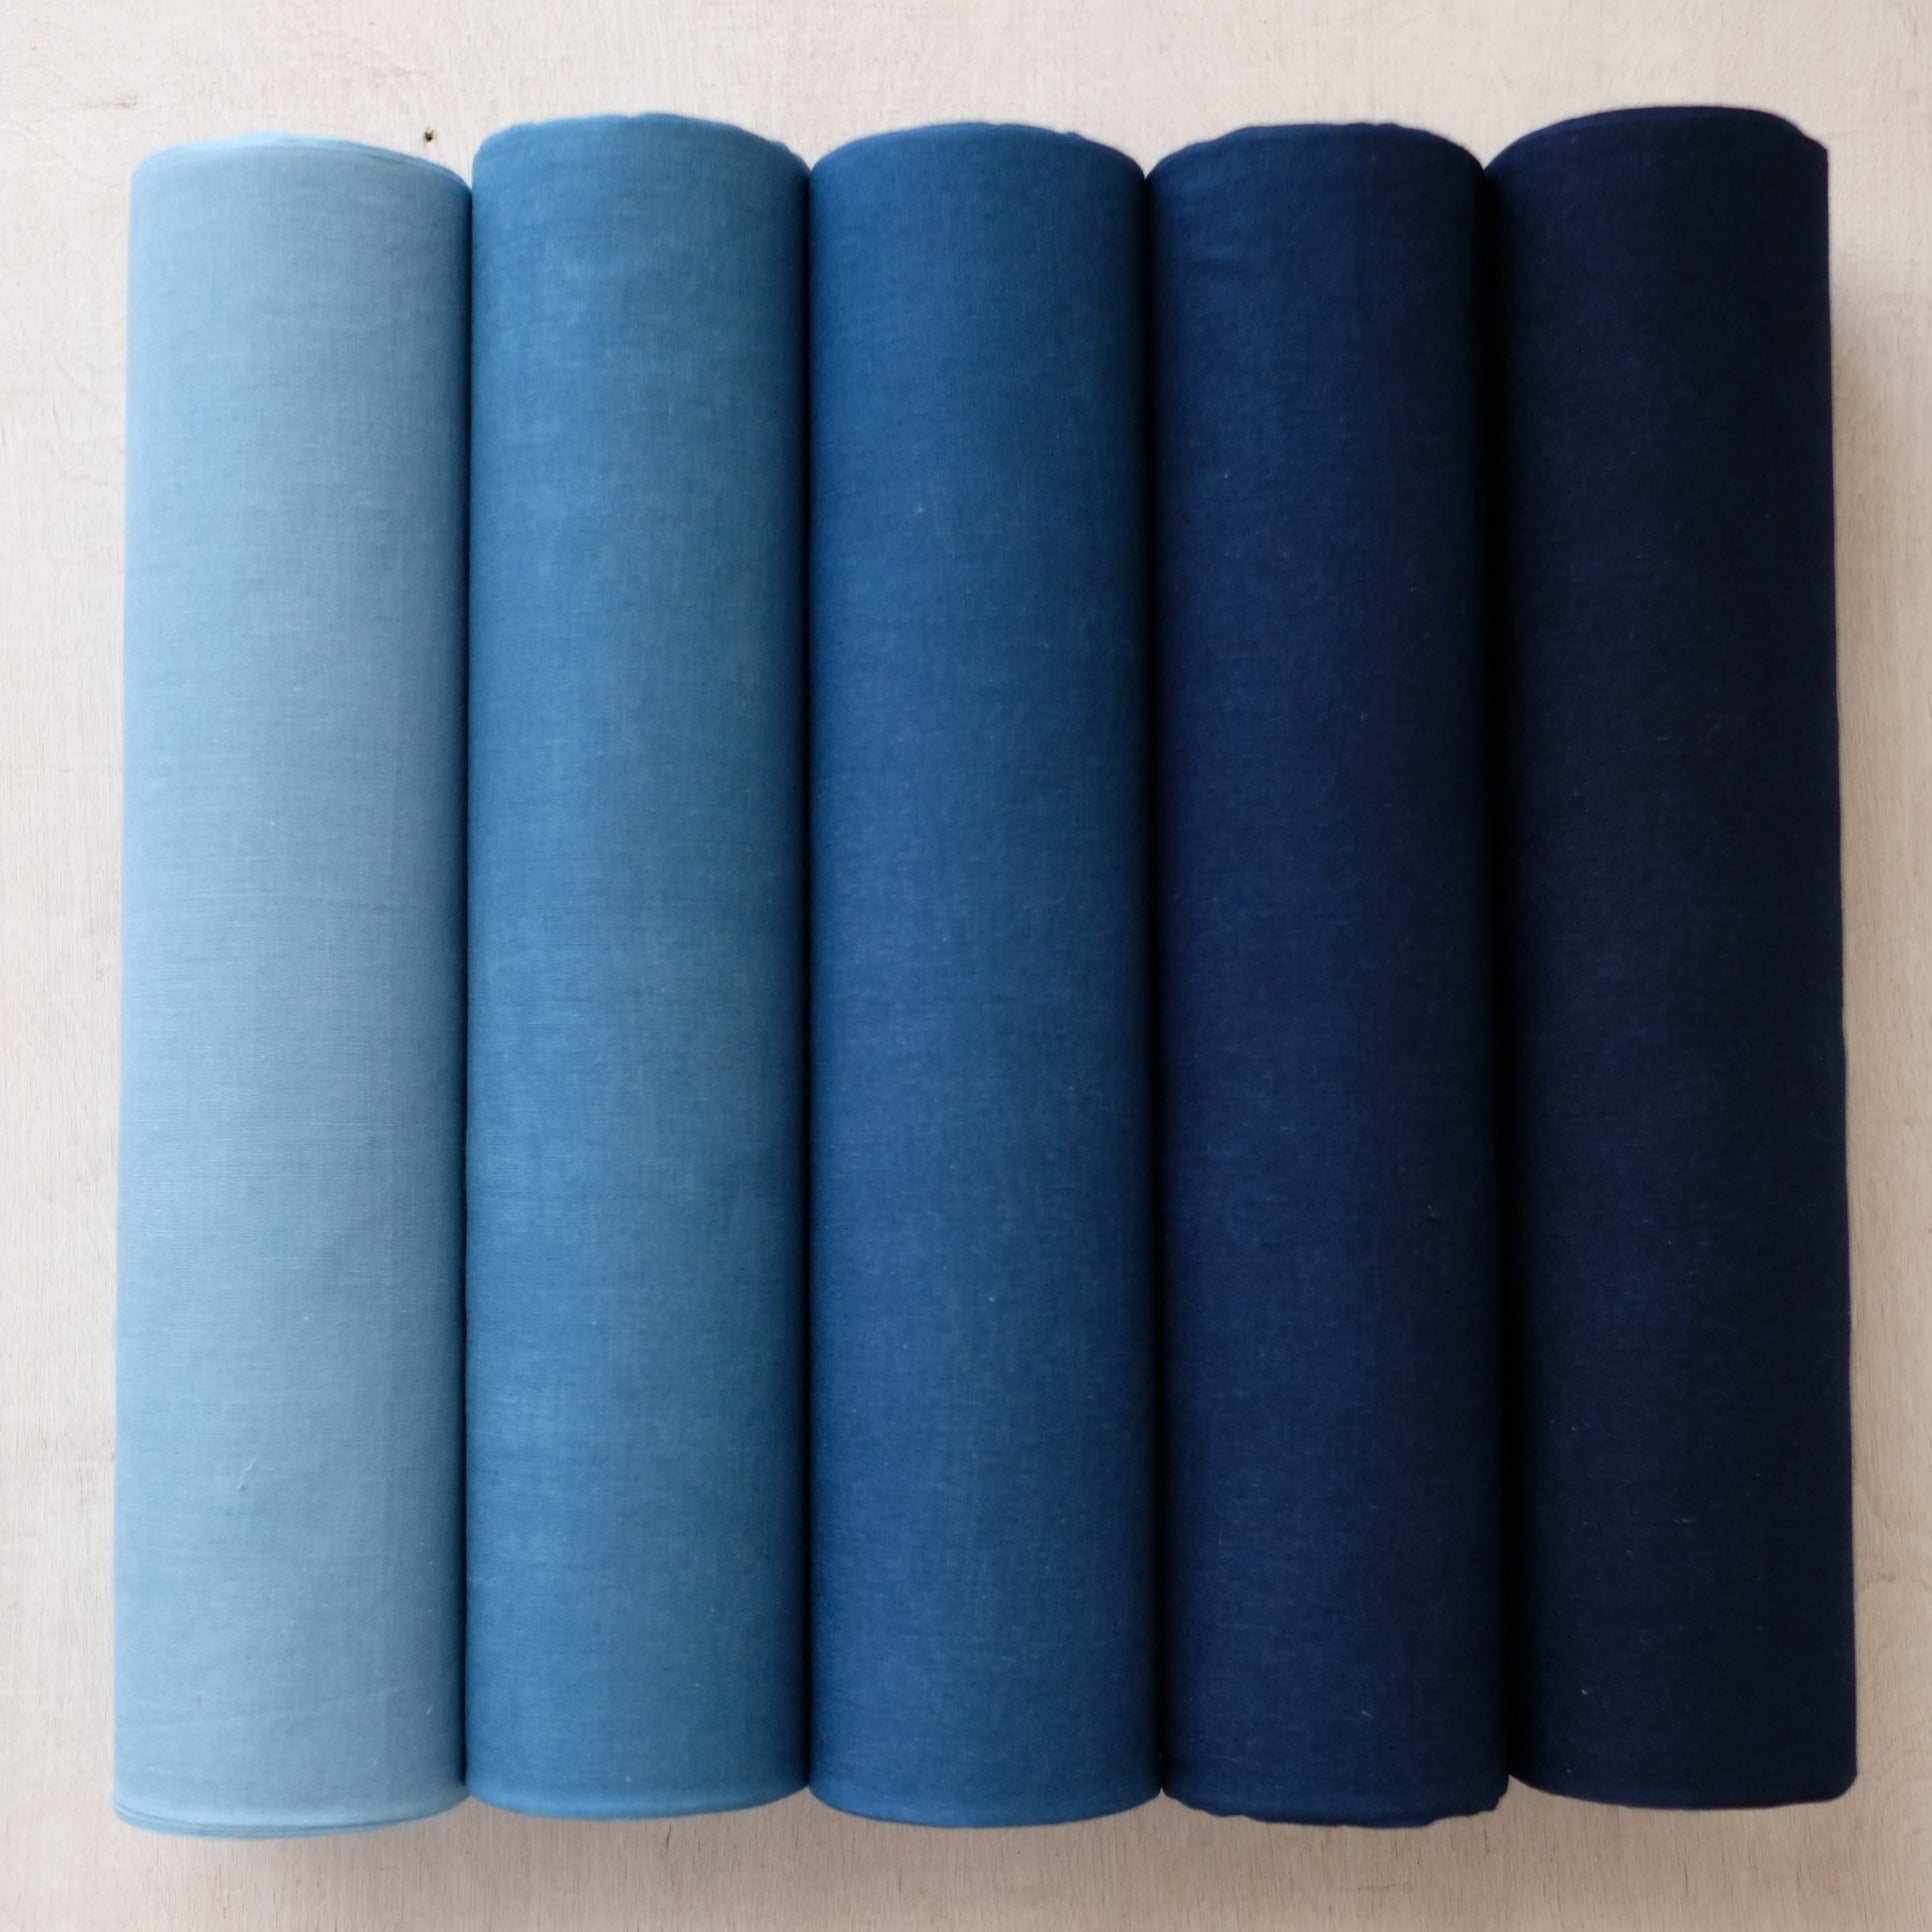 BUAISOU Indigo-dyed fabric - 100% cotton